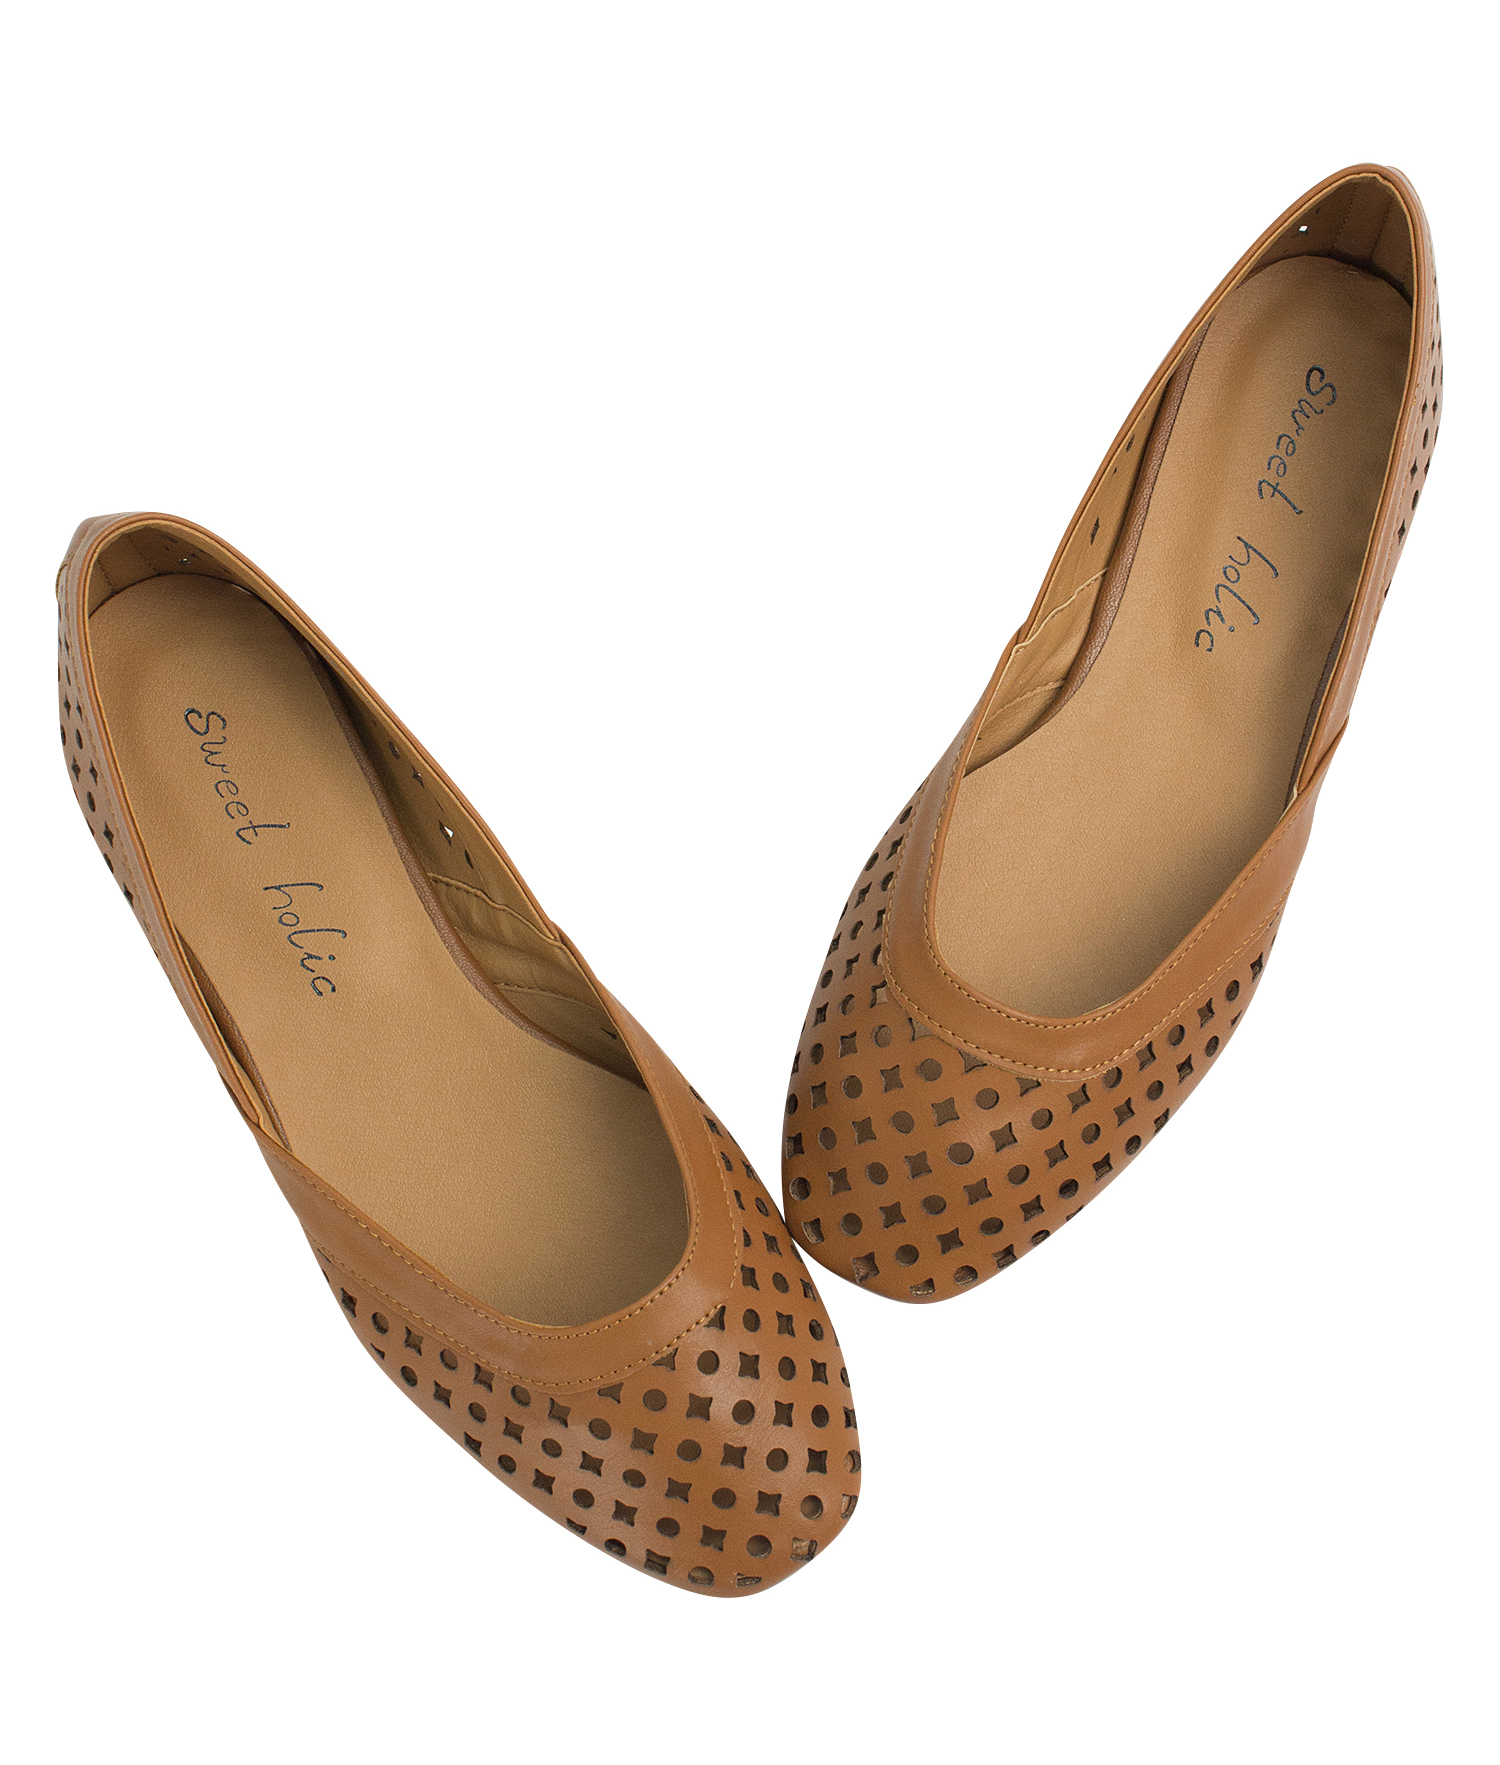 Geometric Cut Out Flat Shoes Flatshoes Annakastle Womens Brown